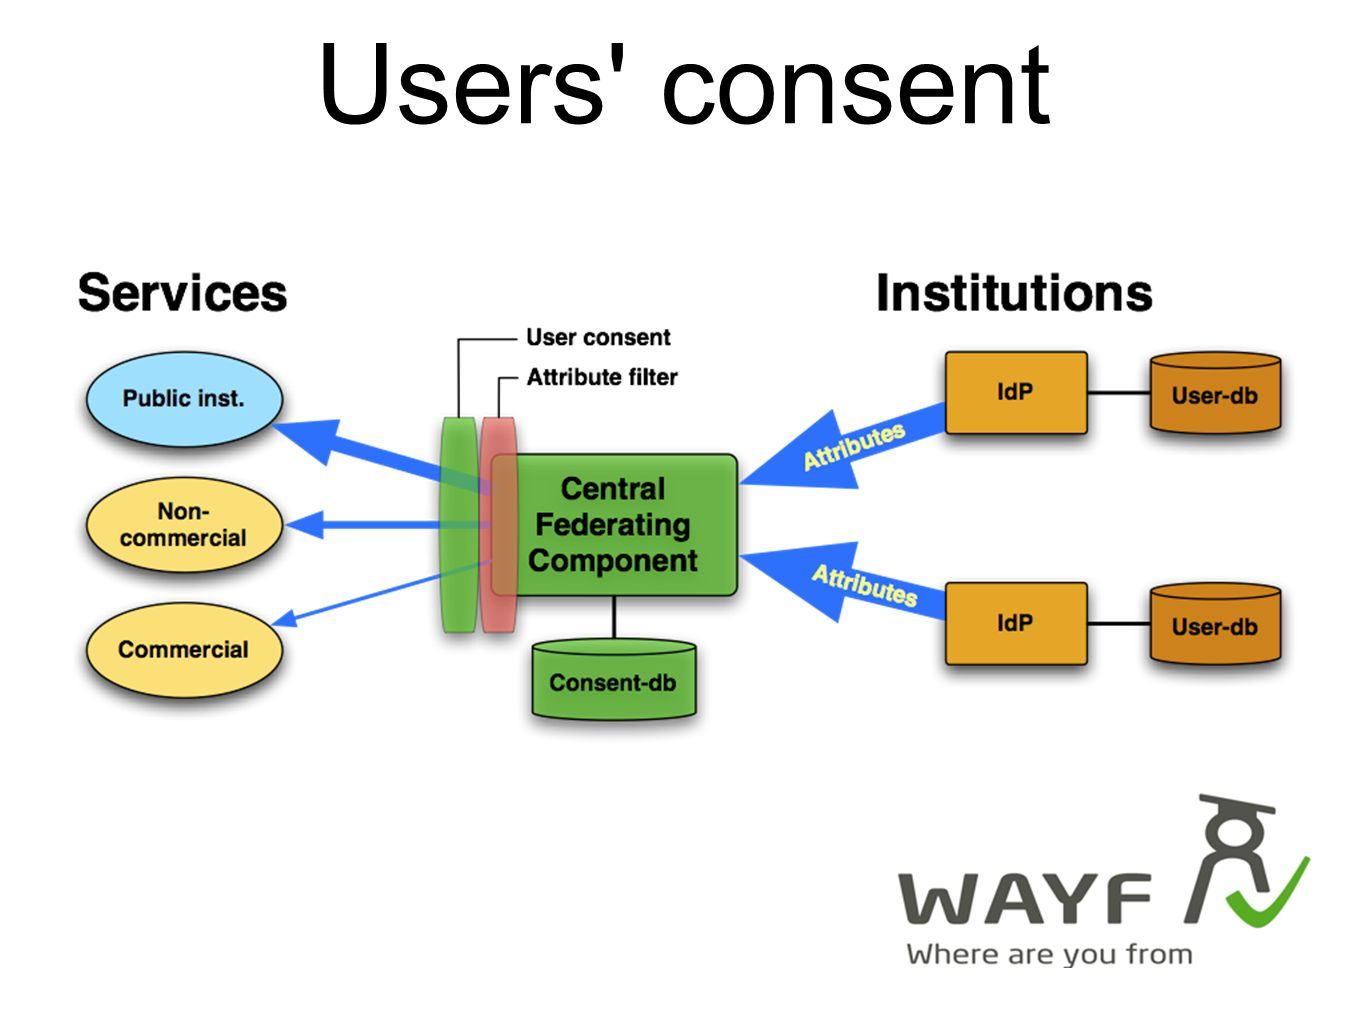 Users consent